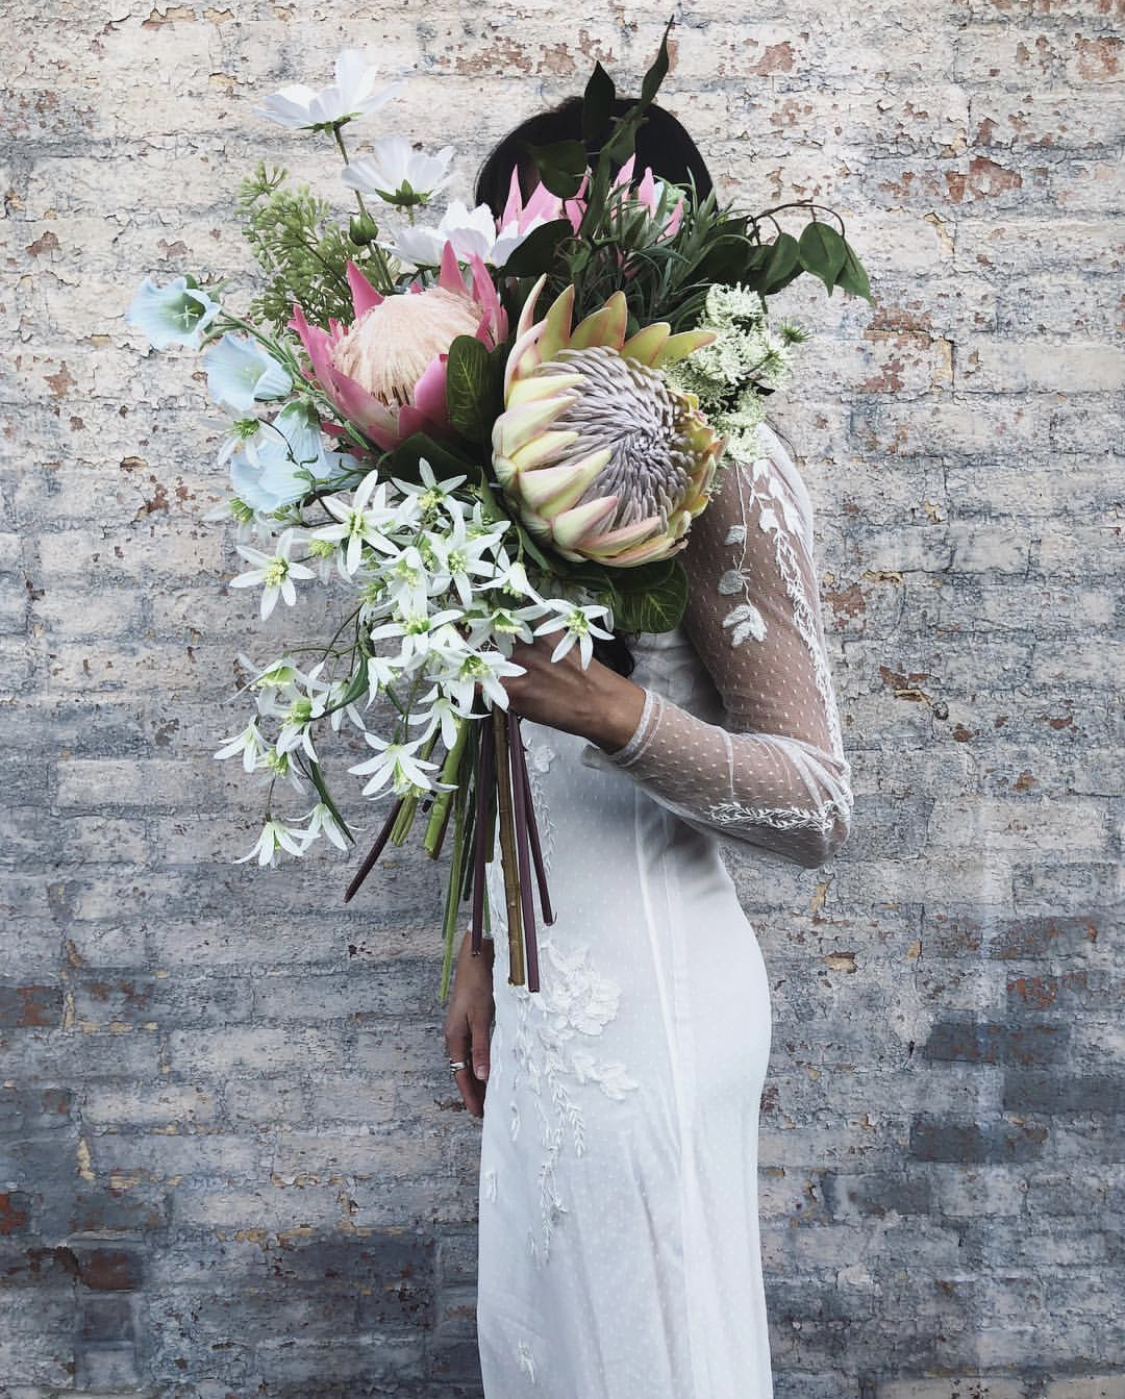 Woman in white dress holds large bouquet of fake wedding flowers in front of a brick wall